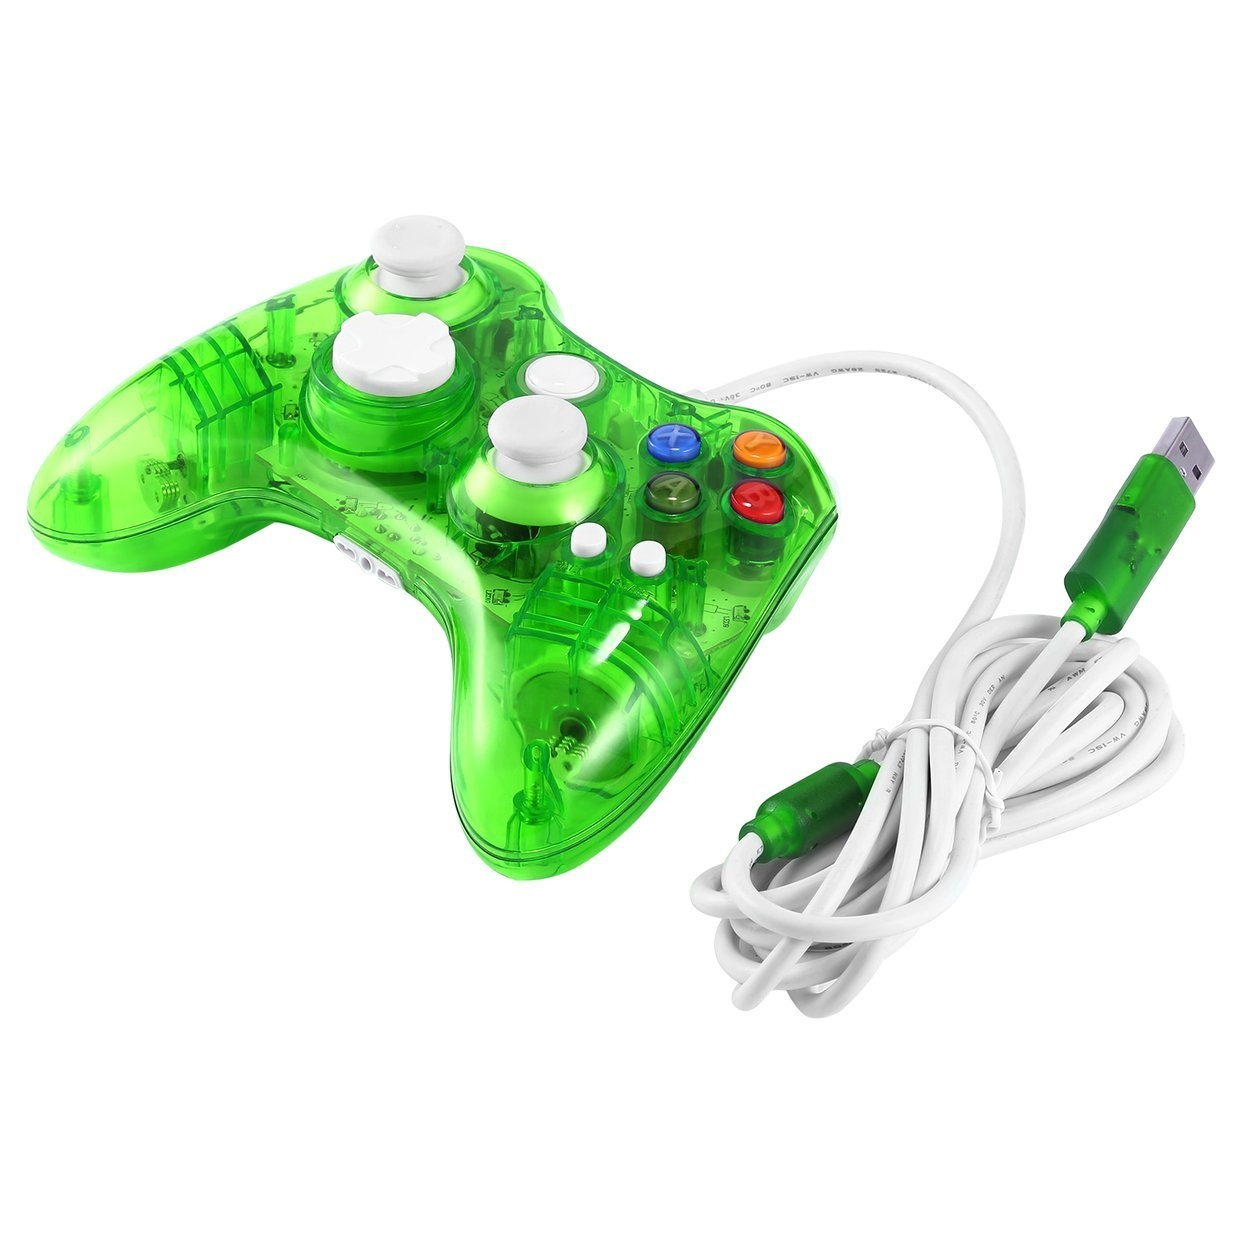 Wired Xbox One Controller Light Flashing: Generic OR USB Wired Game Controller for Xbox 360 Joypad Gamepad rh:jumia.co.ke,Design